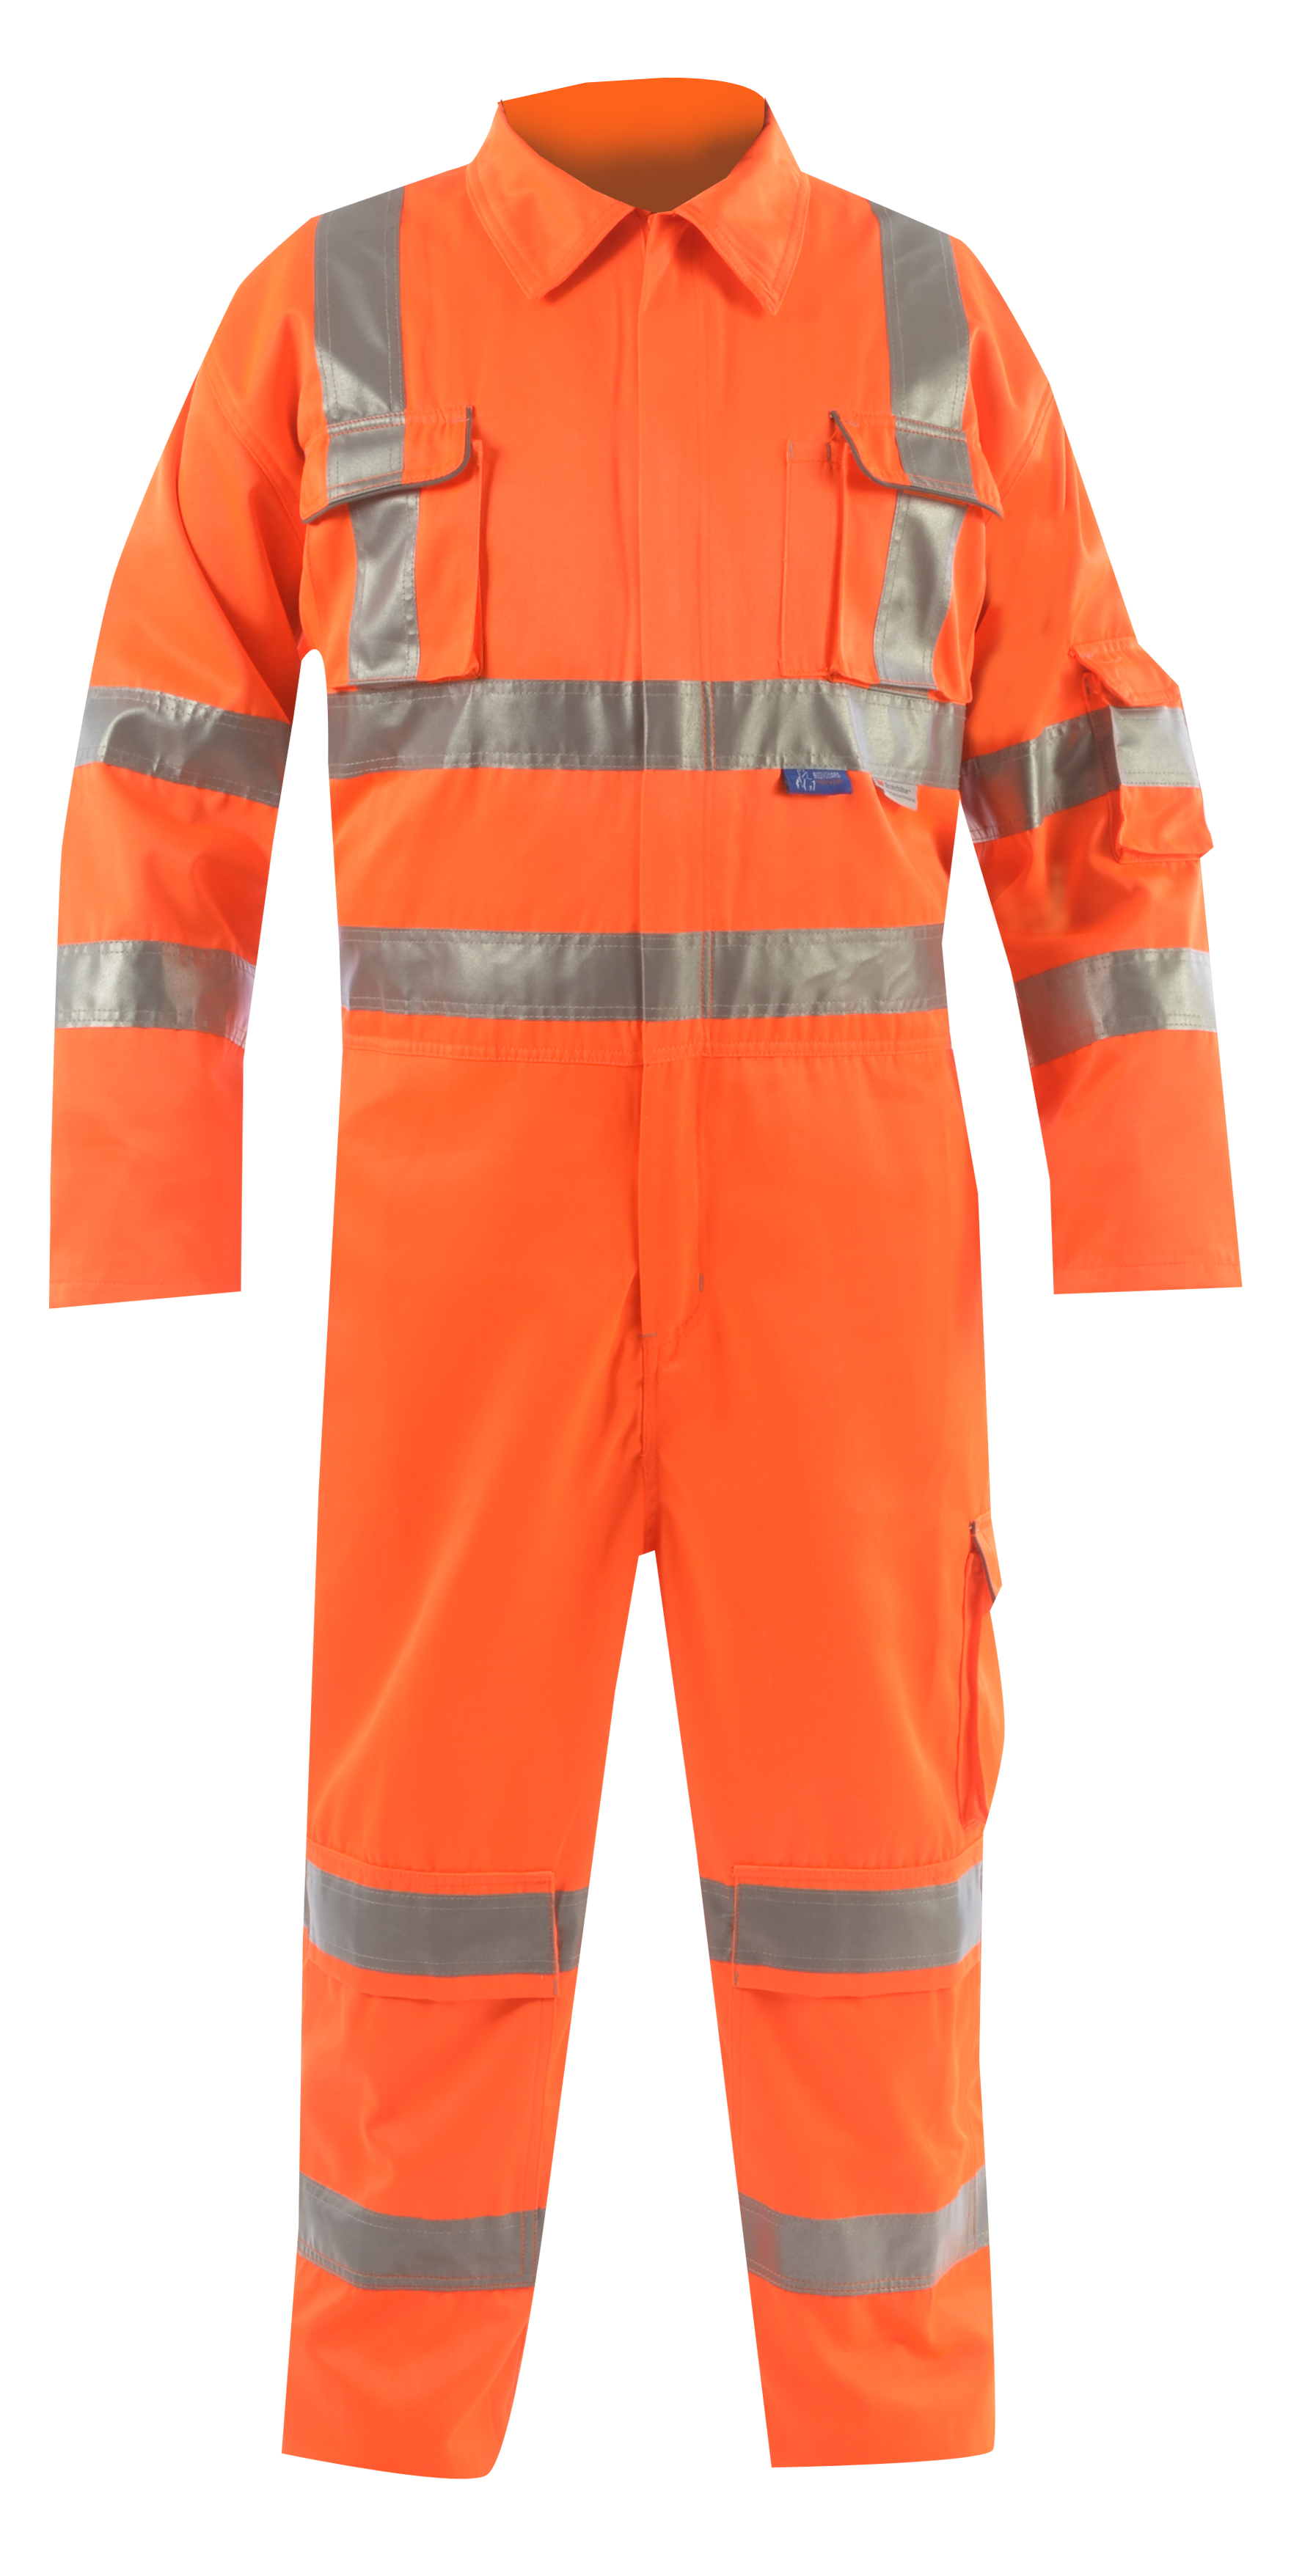 bodyguard-Coveralls-Hi-Vis-Rail-Coverall